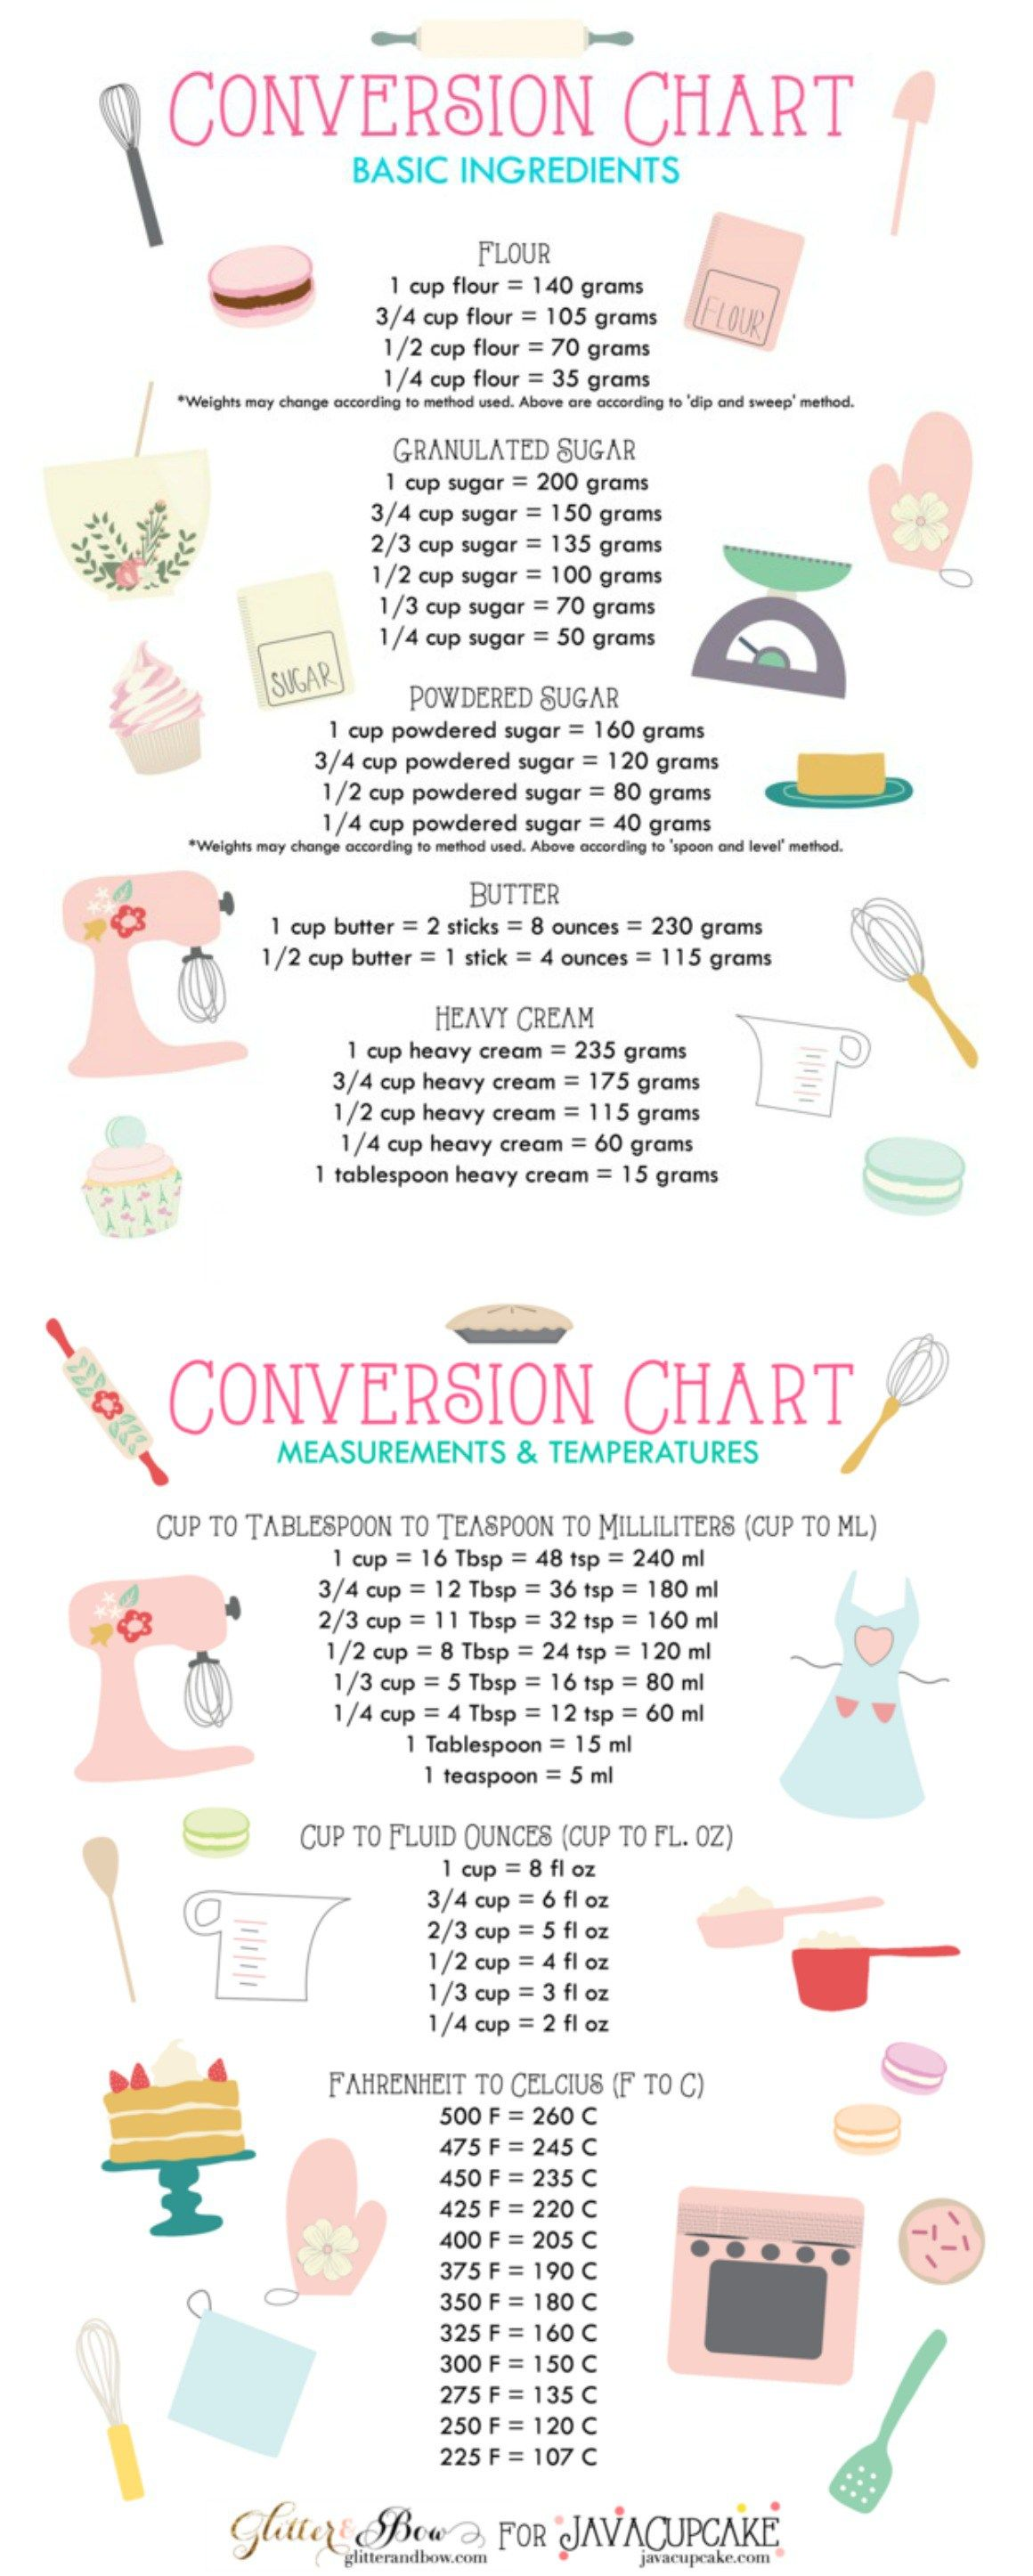 Conversion Chart Kitchen Conversion Chart, Metric Conversion Chart,  Measurement Conversions, Weight Conversion,